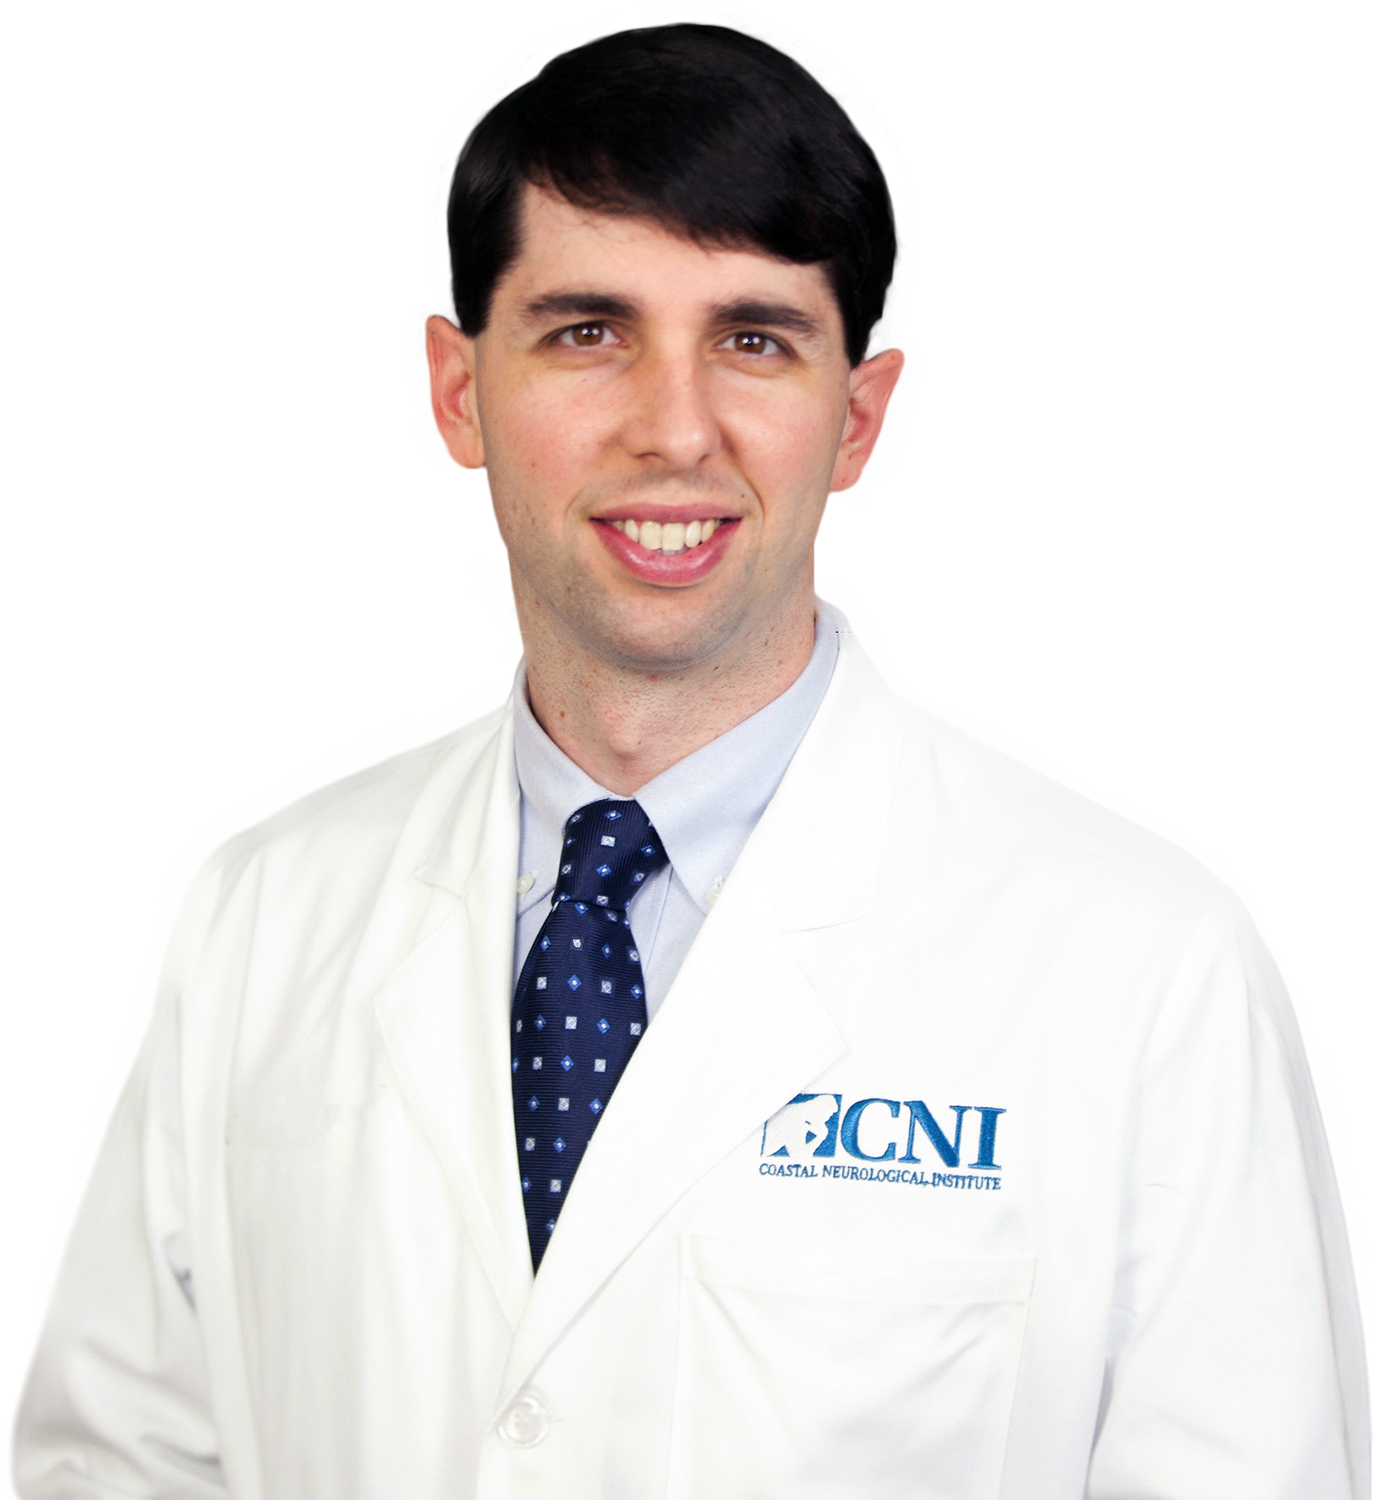 Dr Andrew Manley Cni Coastal Neurological Institute